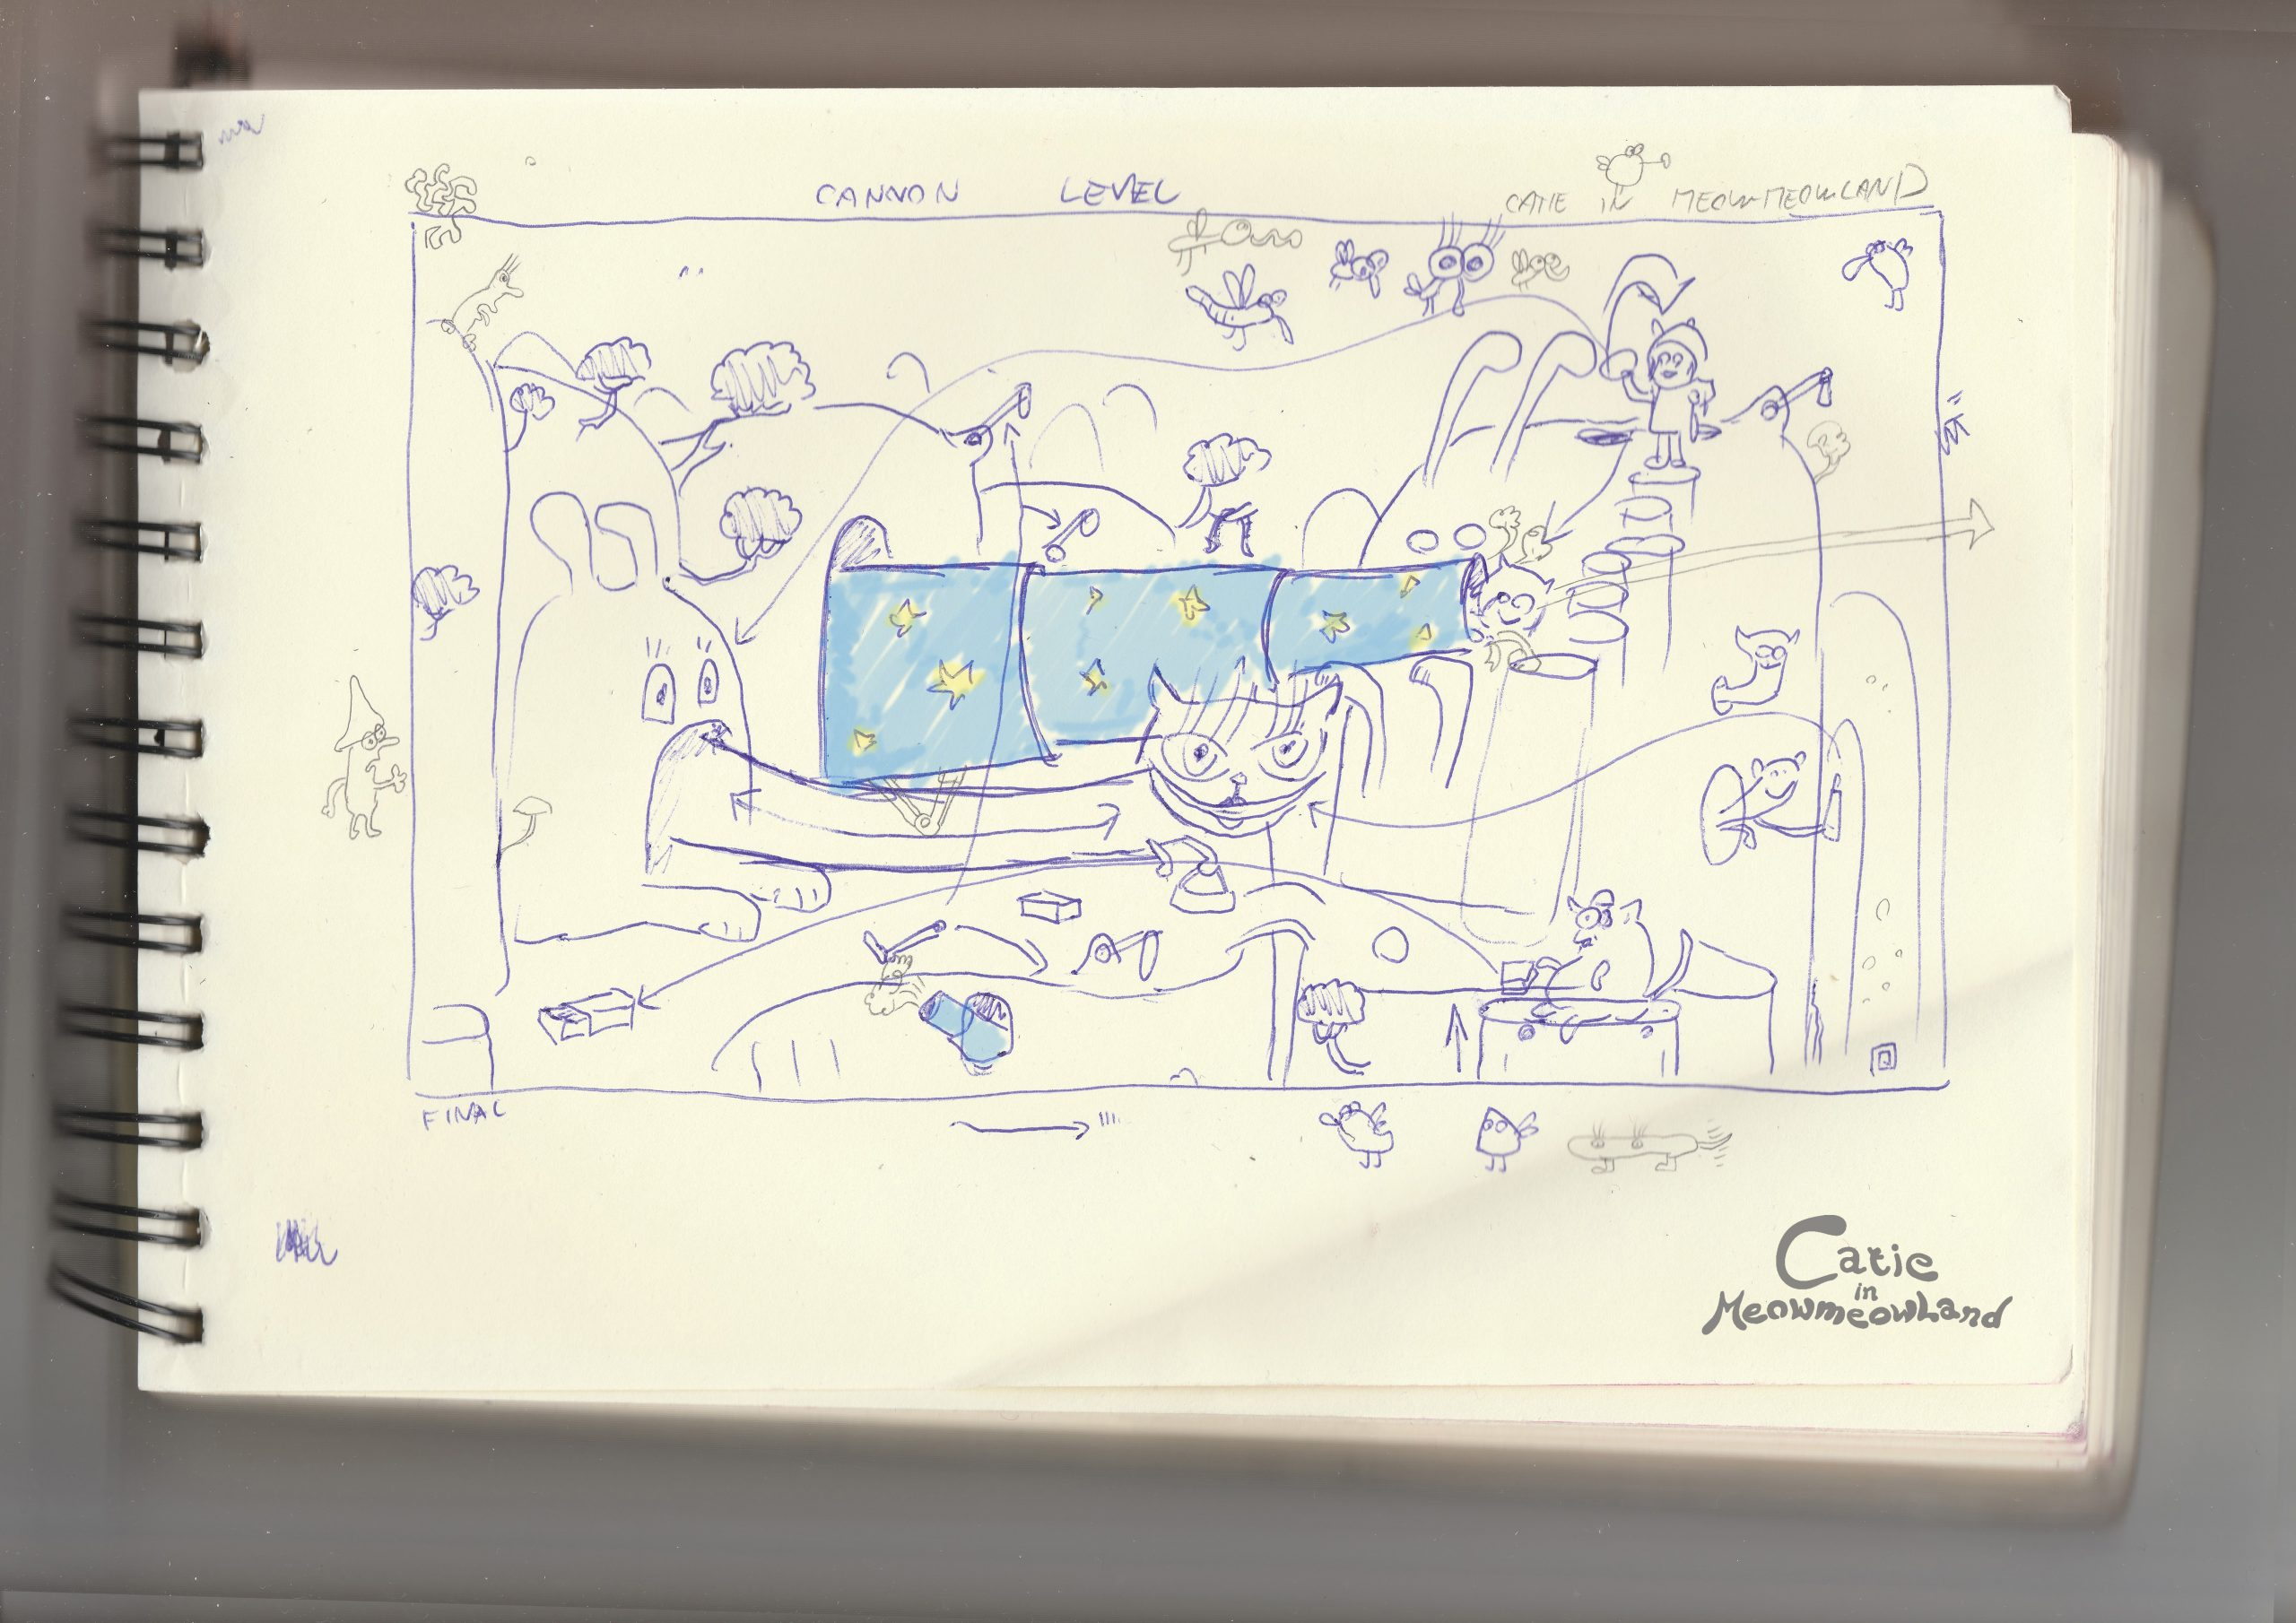 Catie in MeowmeowLand - Doodle illustration - Sketch of Cannon level